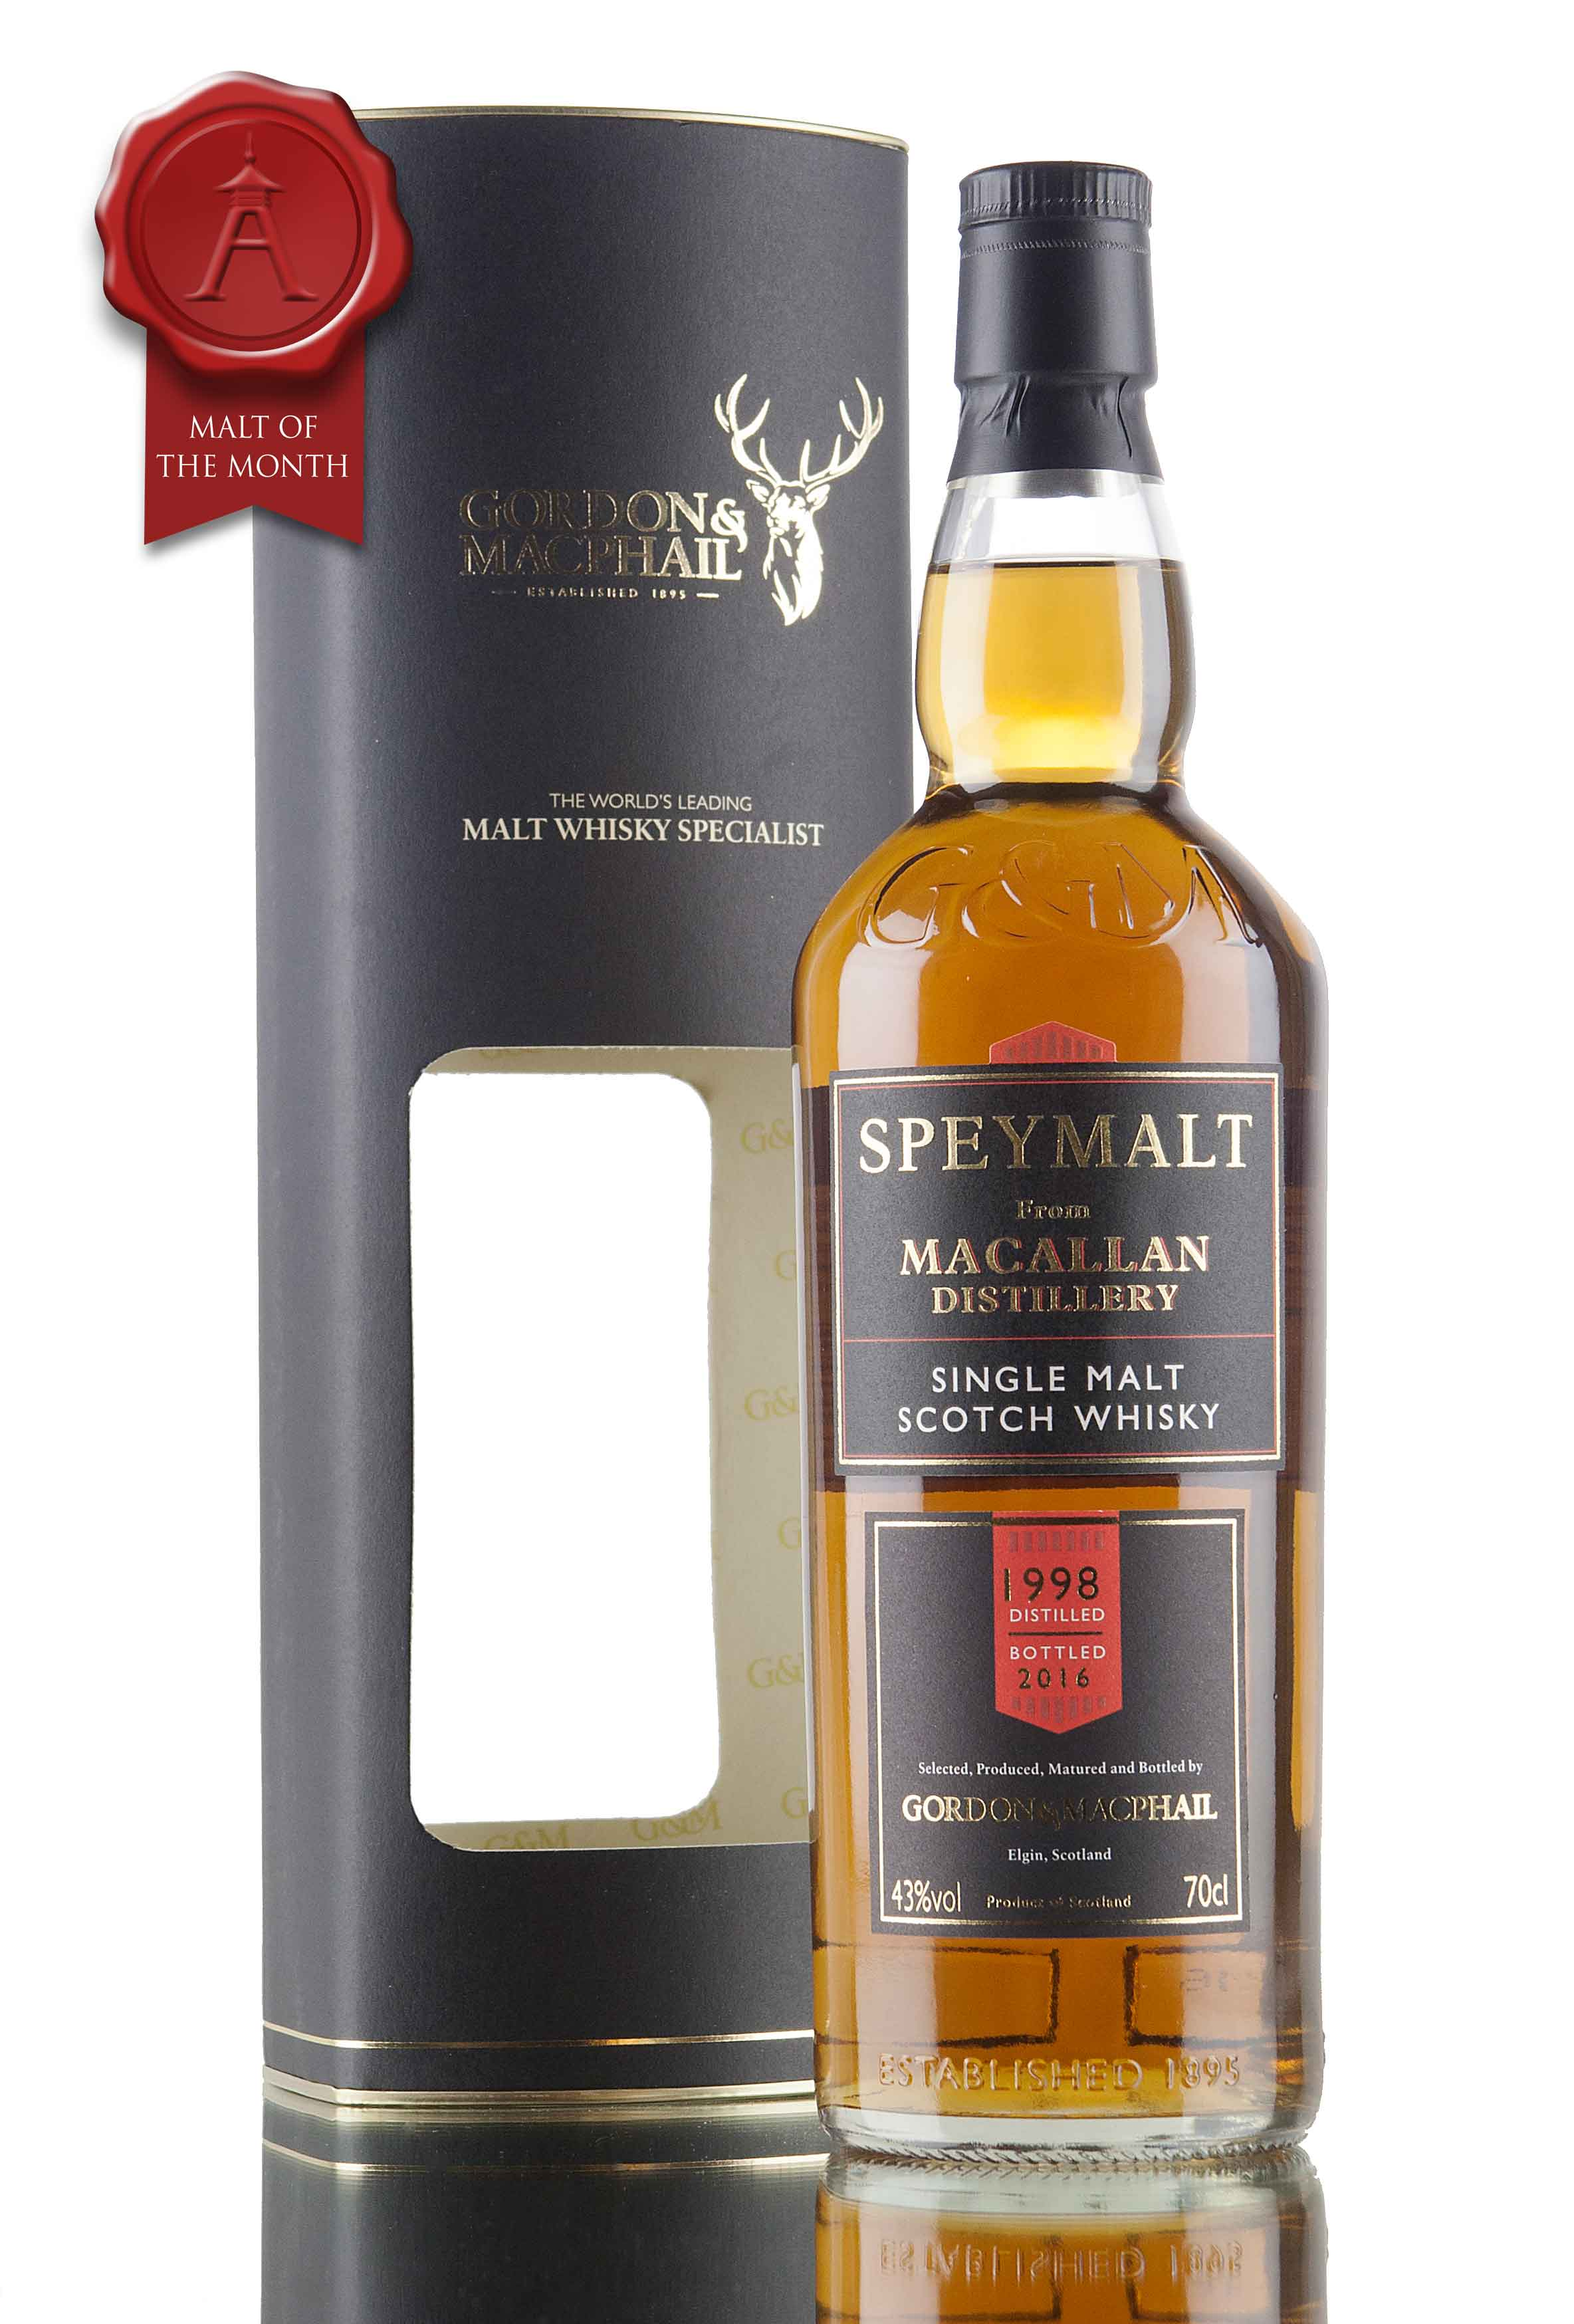 Macallan 1998 Speymalt - Bottled 2016 / Gordon & MacPhail